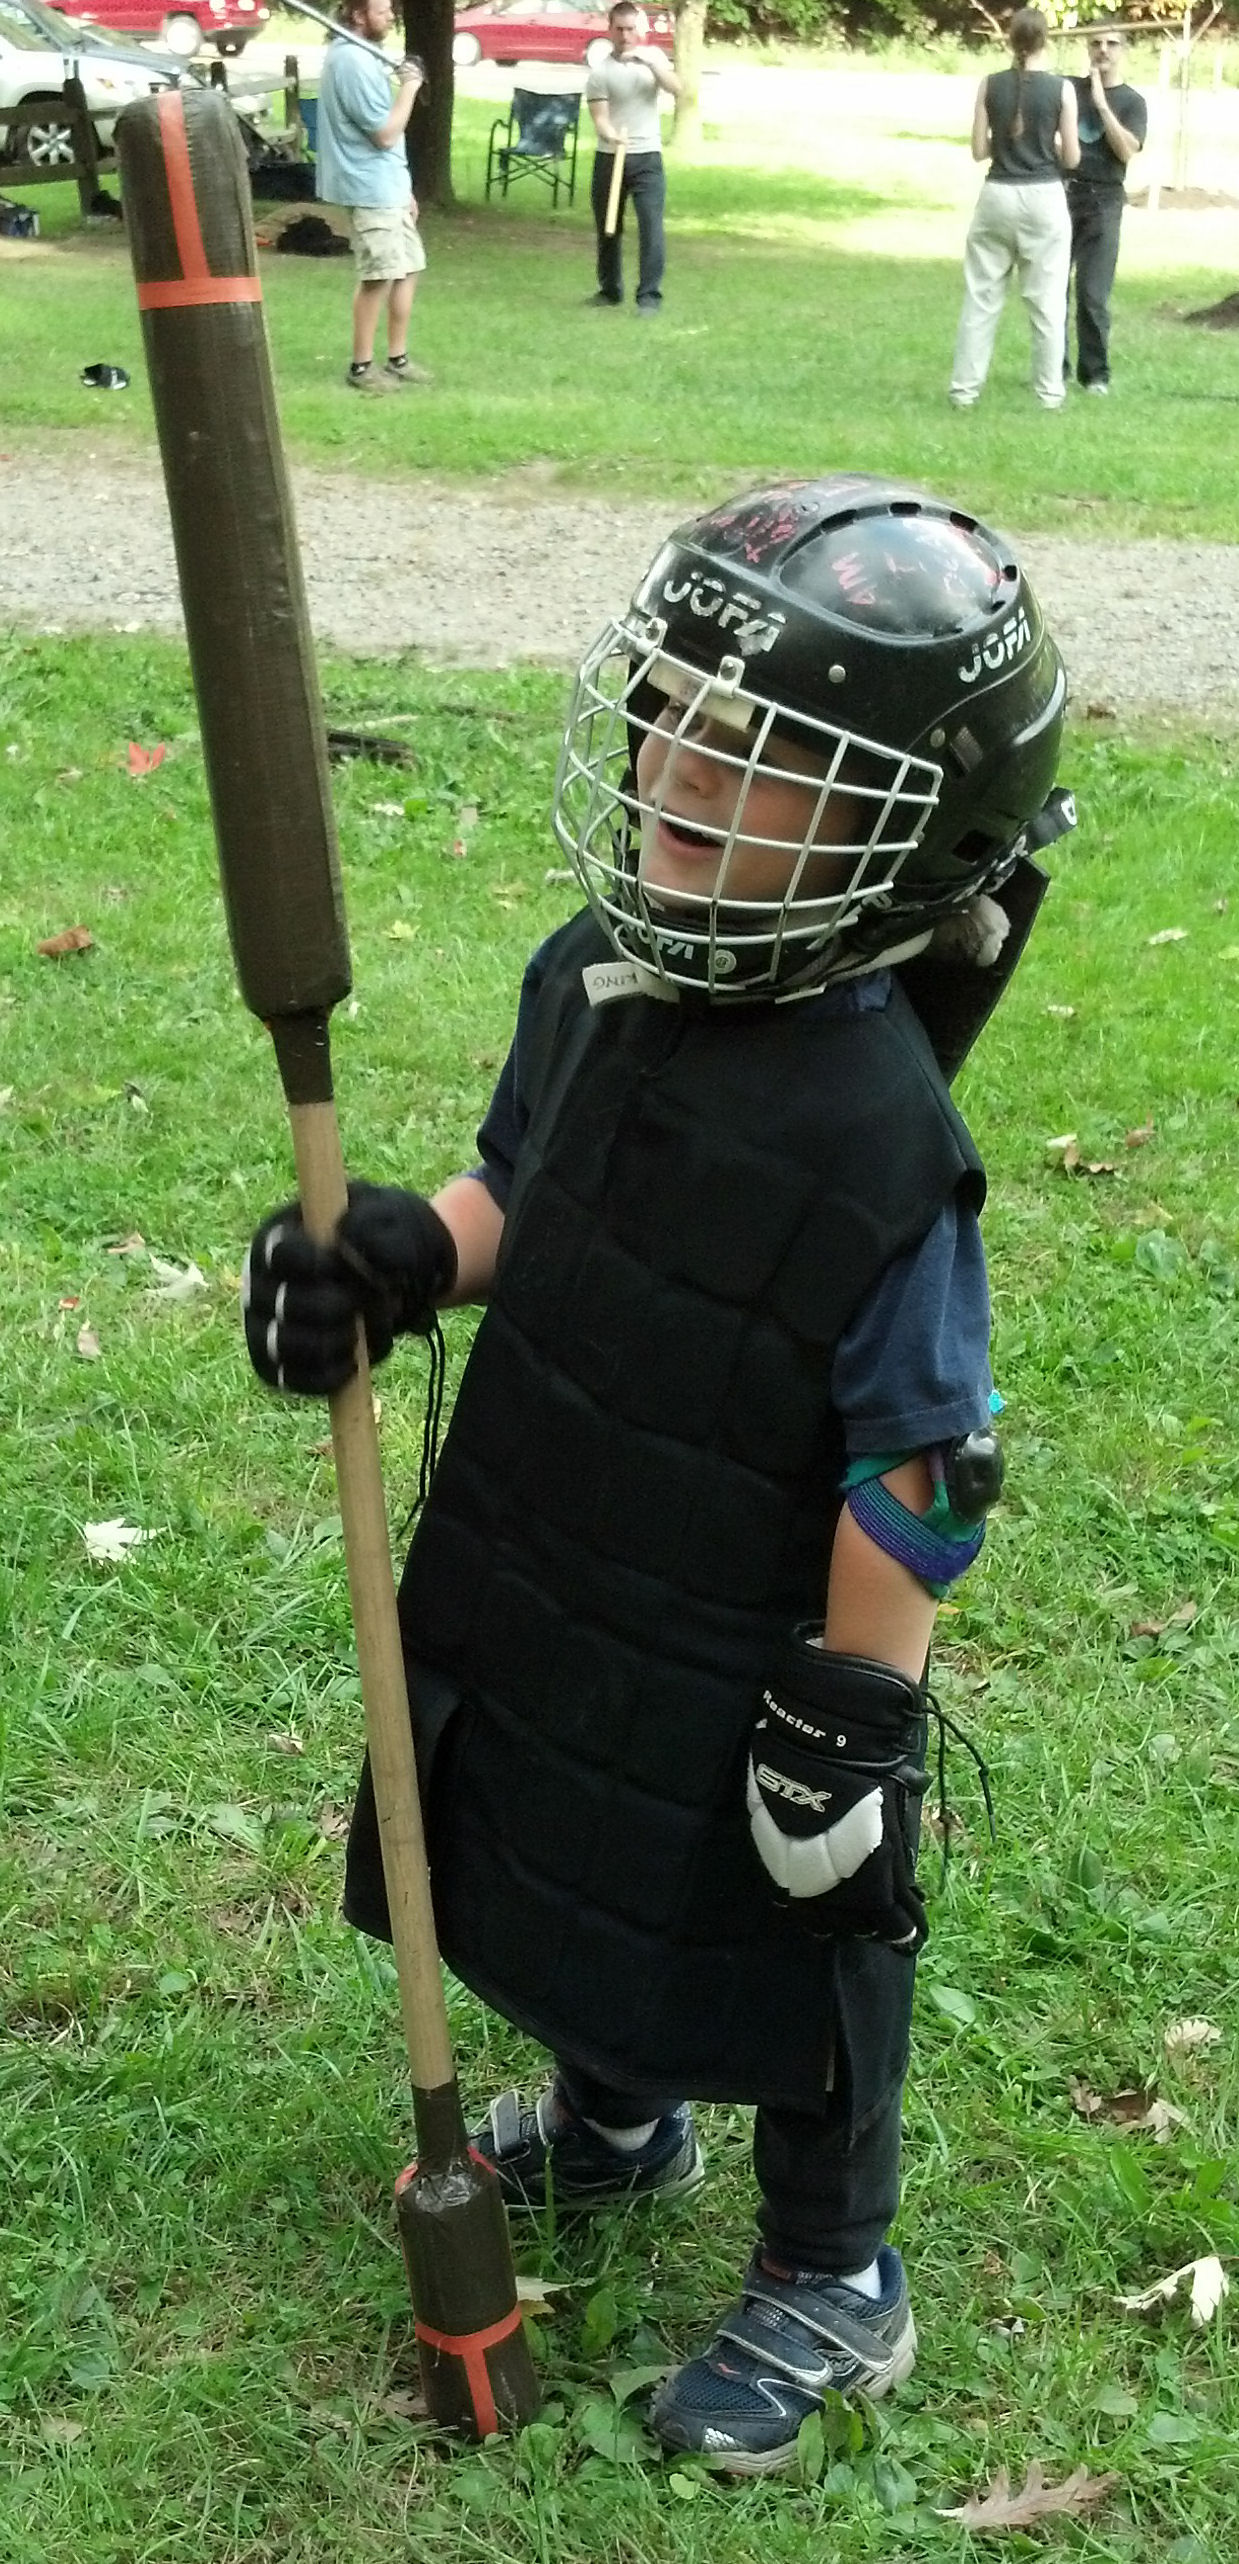 Basic Youth Armor Requirements | Æthelmearc Youth Combat